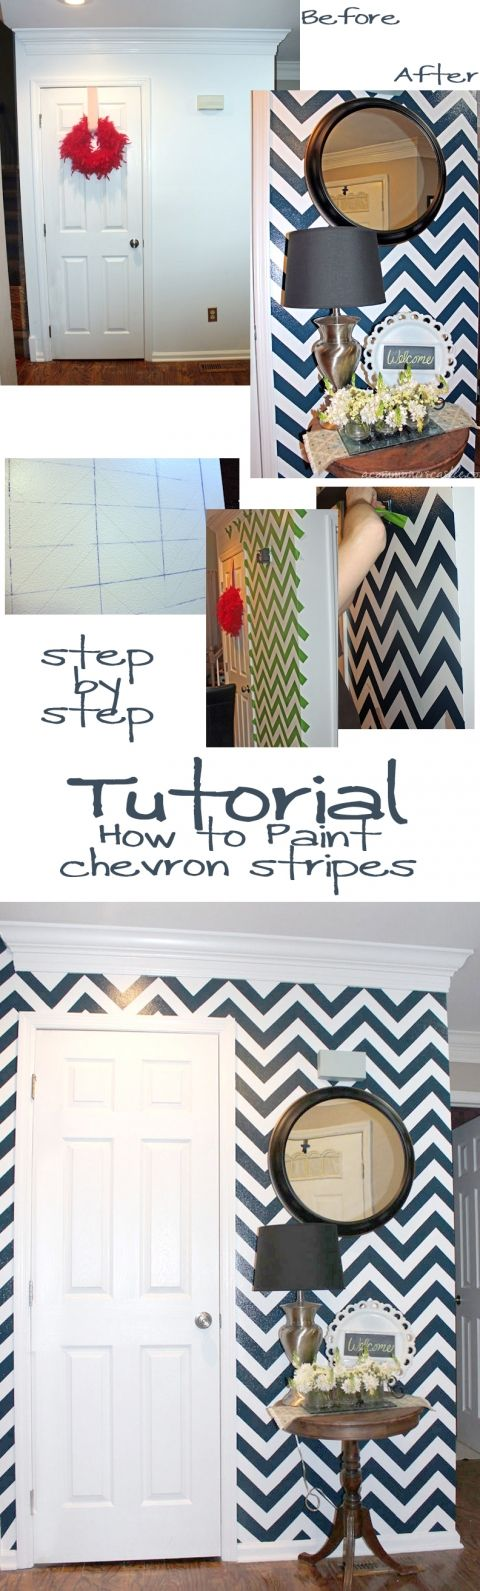 Detailed Tutorial for Painted Chevron Stripes